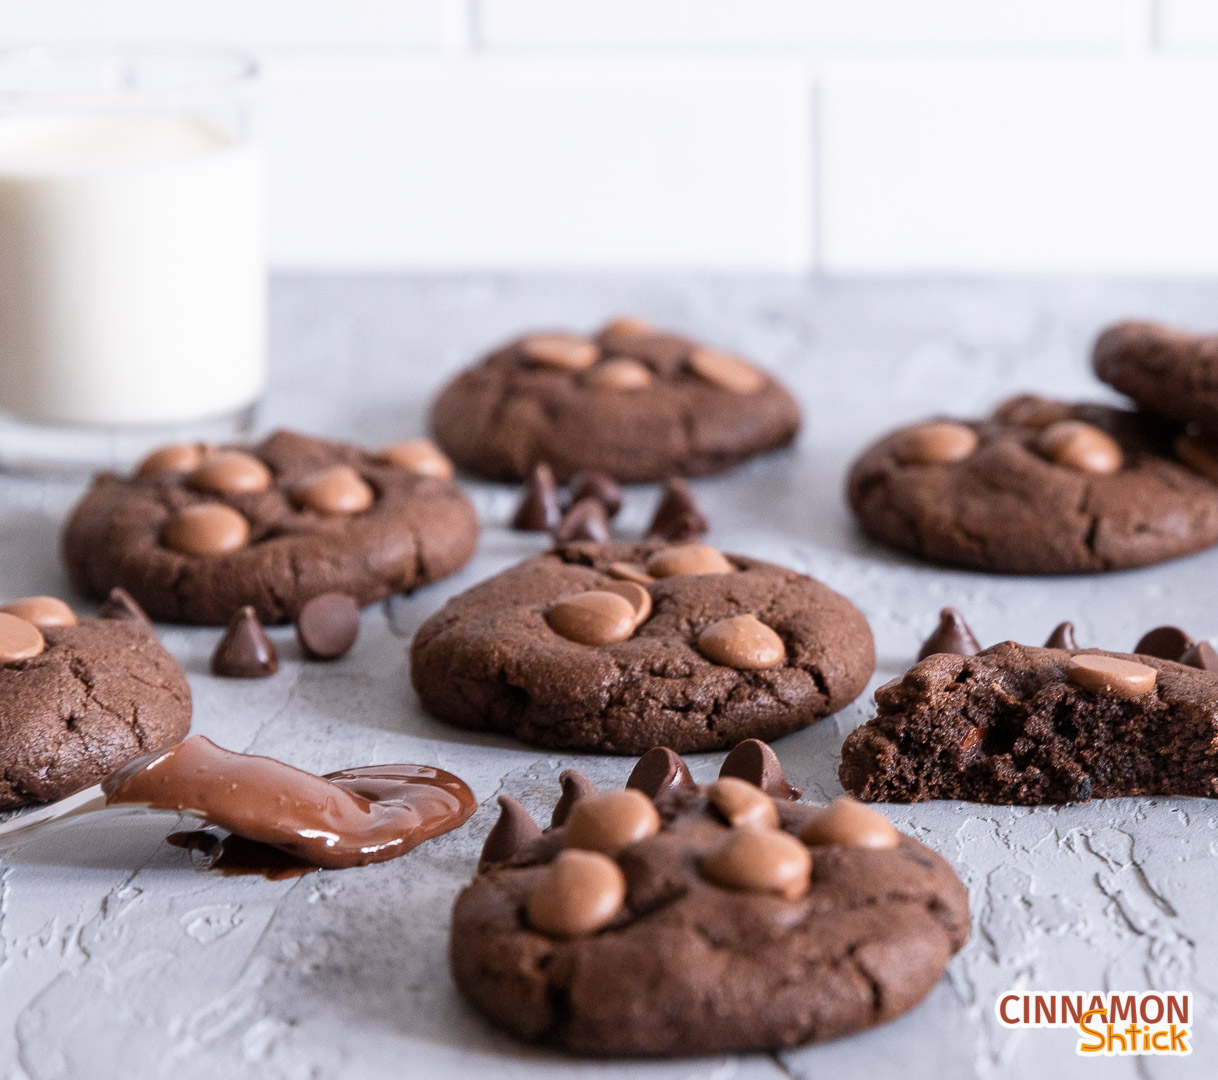 chocolate chocolate chip cookies on counter with glass of milk in background